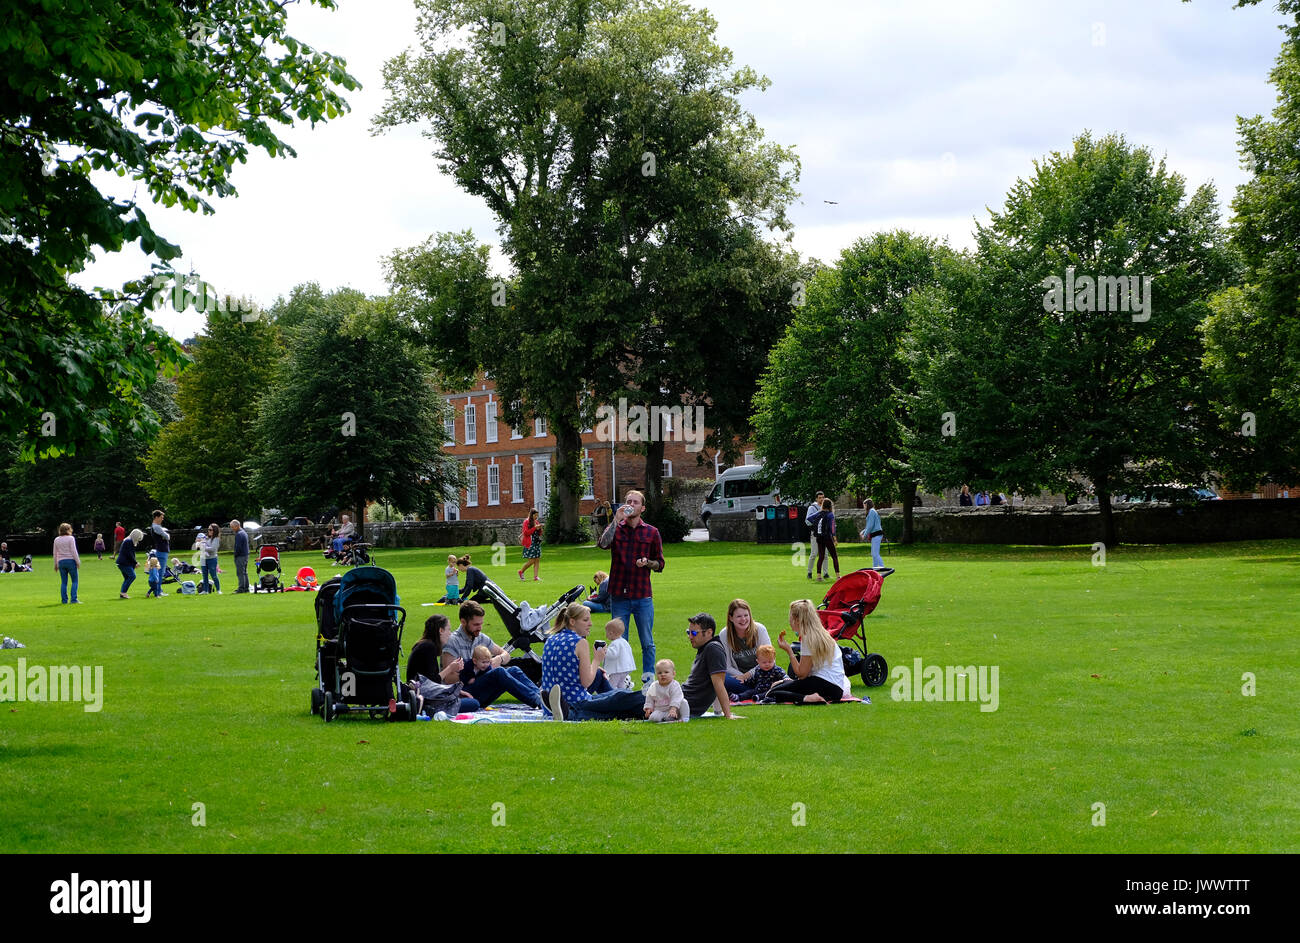 Family and friends picnicking in the grounds of Salisbury Cathedral, Wiltshire,UK - Stock Image